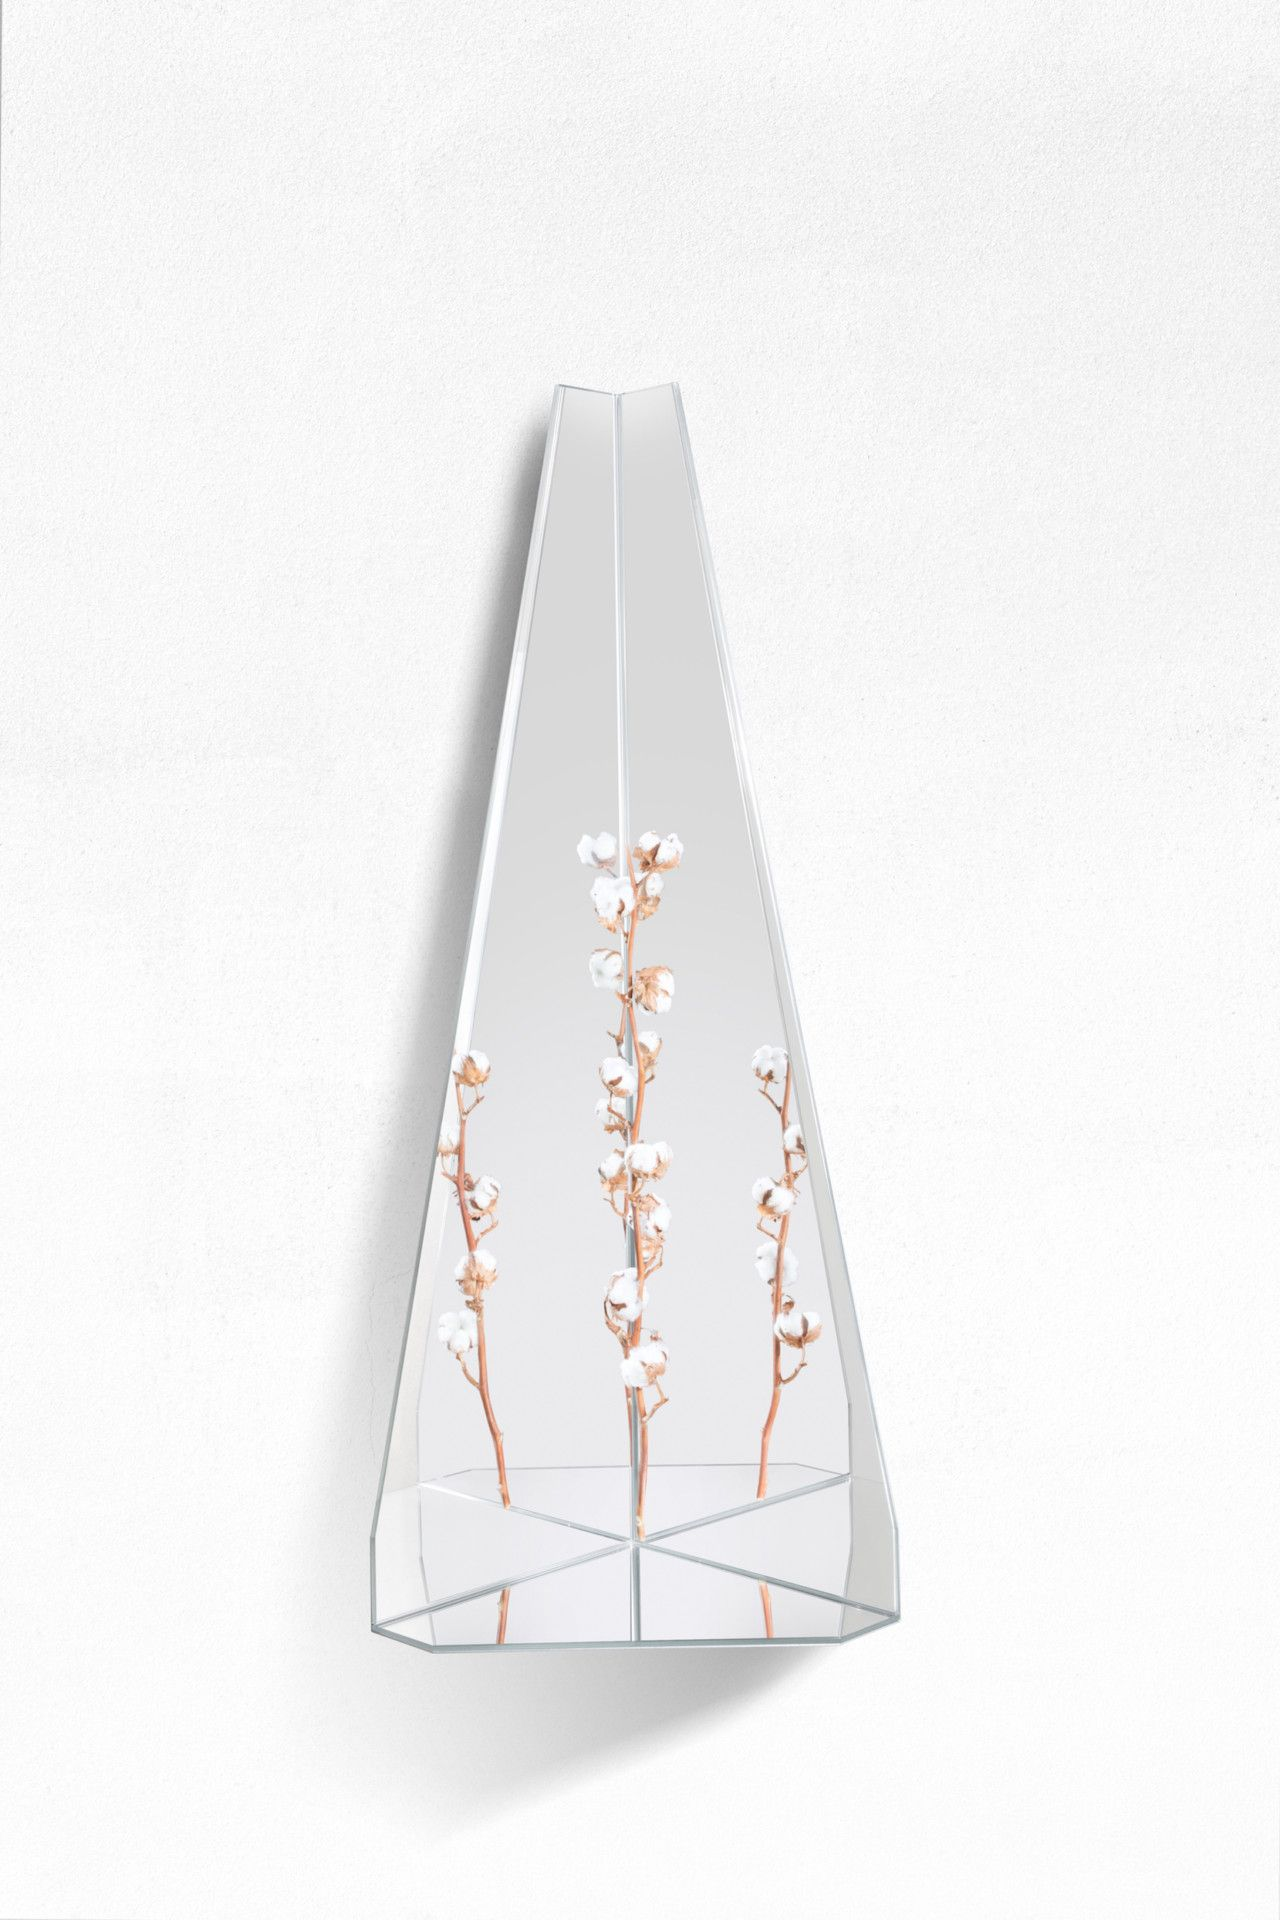 Five Mirrors, Infinite Reflections Riflessioni By Marco Brunori For Adele C